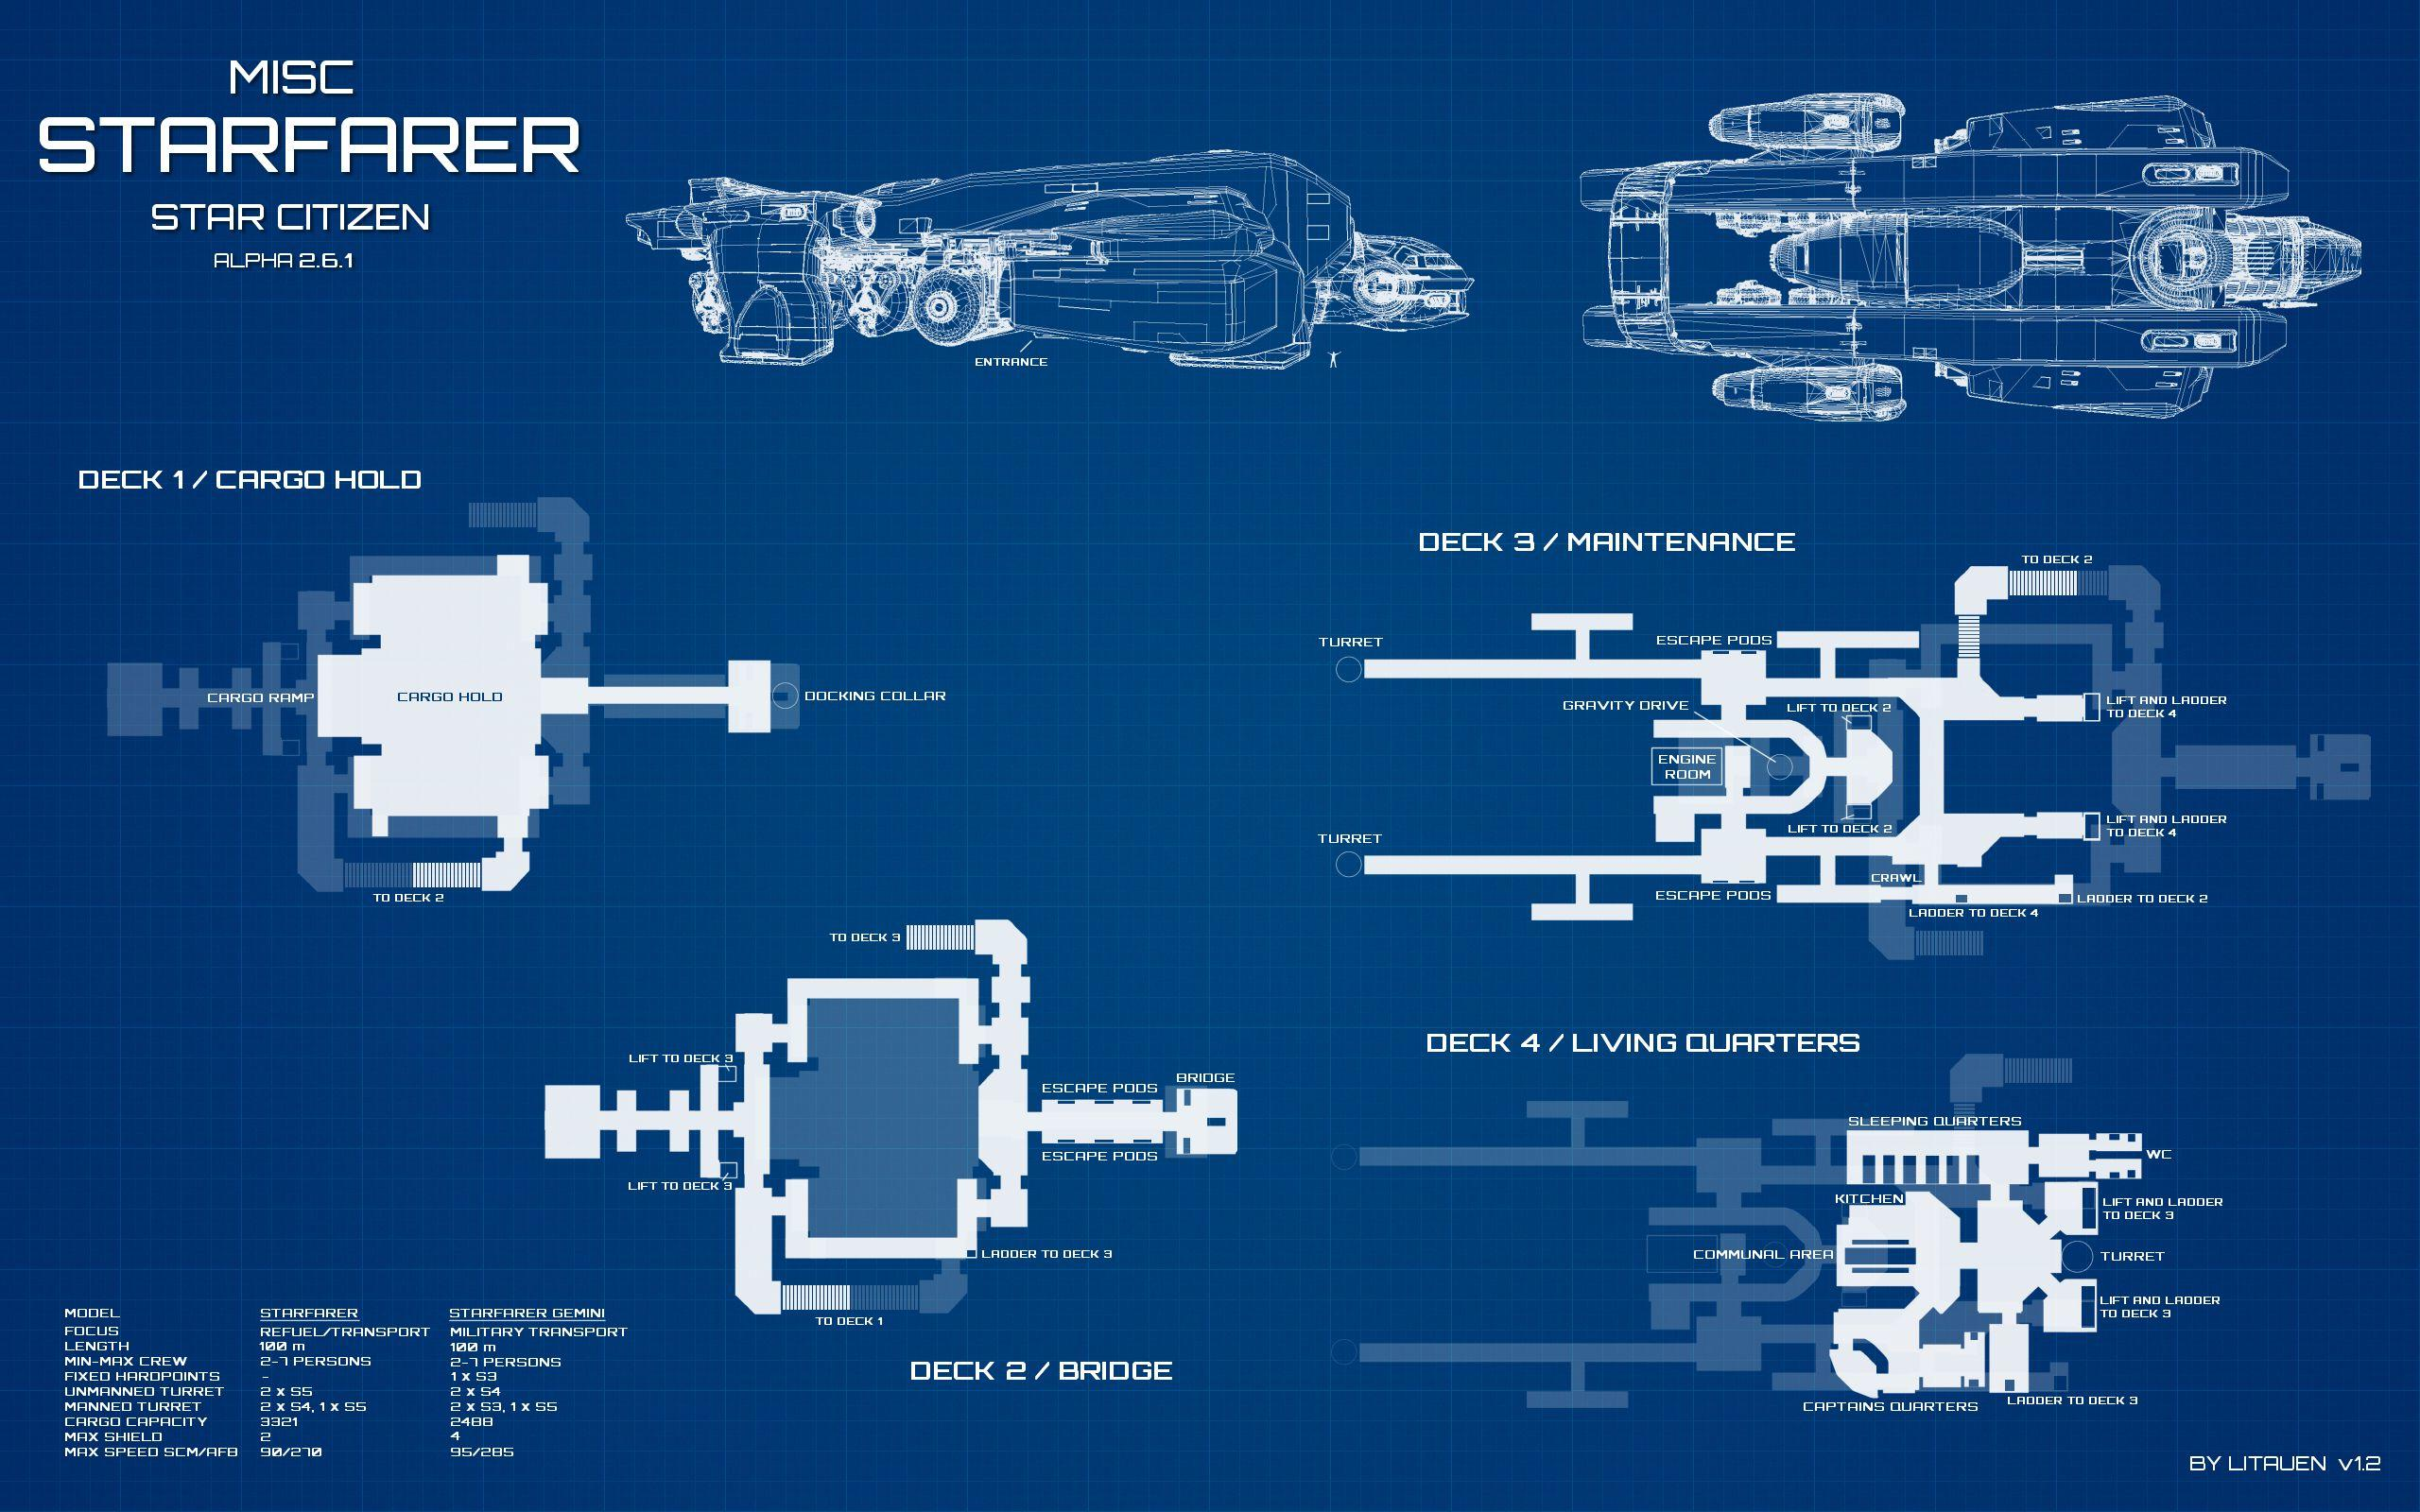 MISC Starfarer - plan